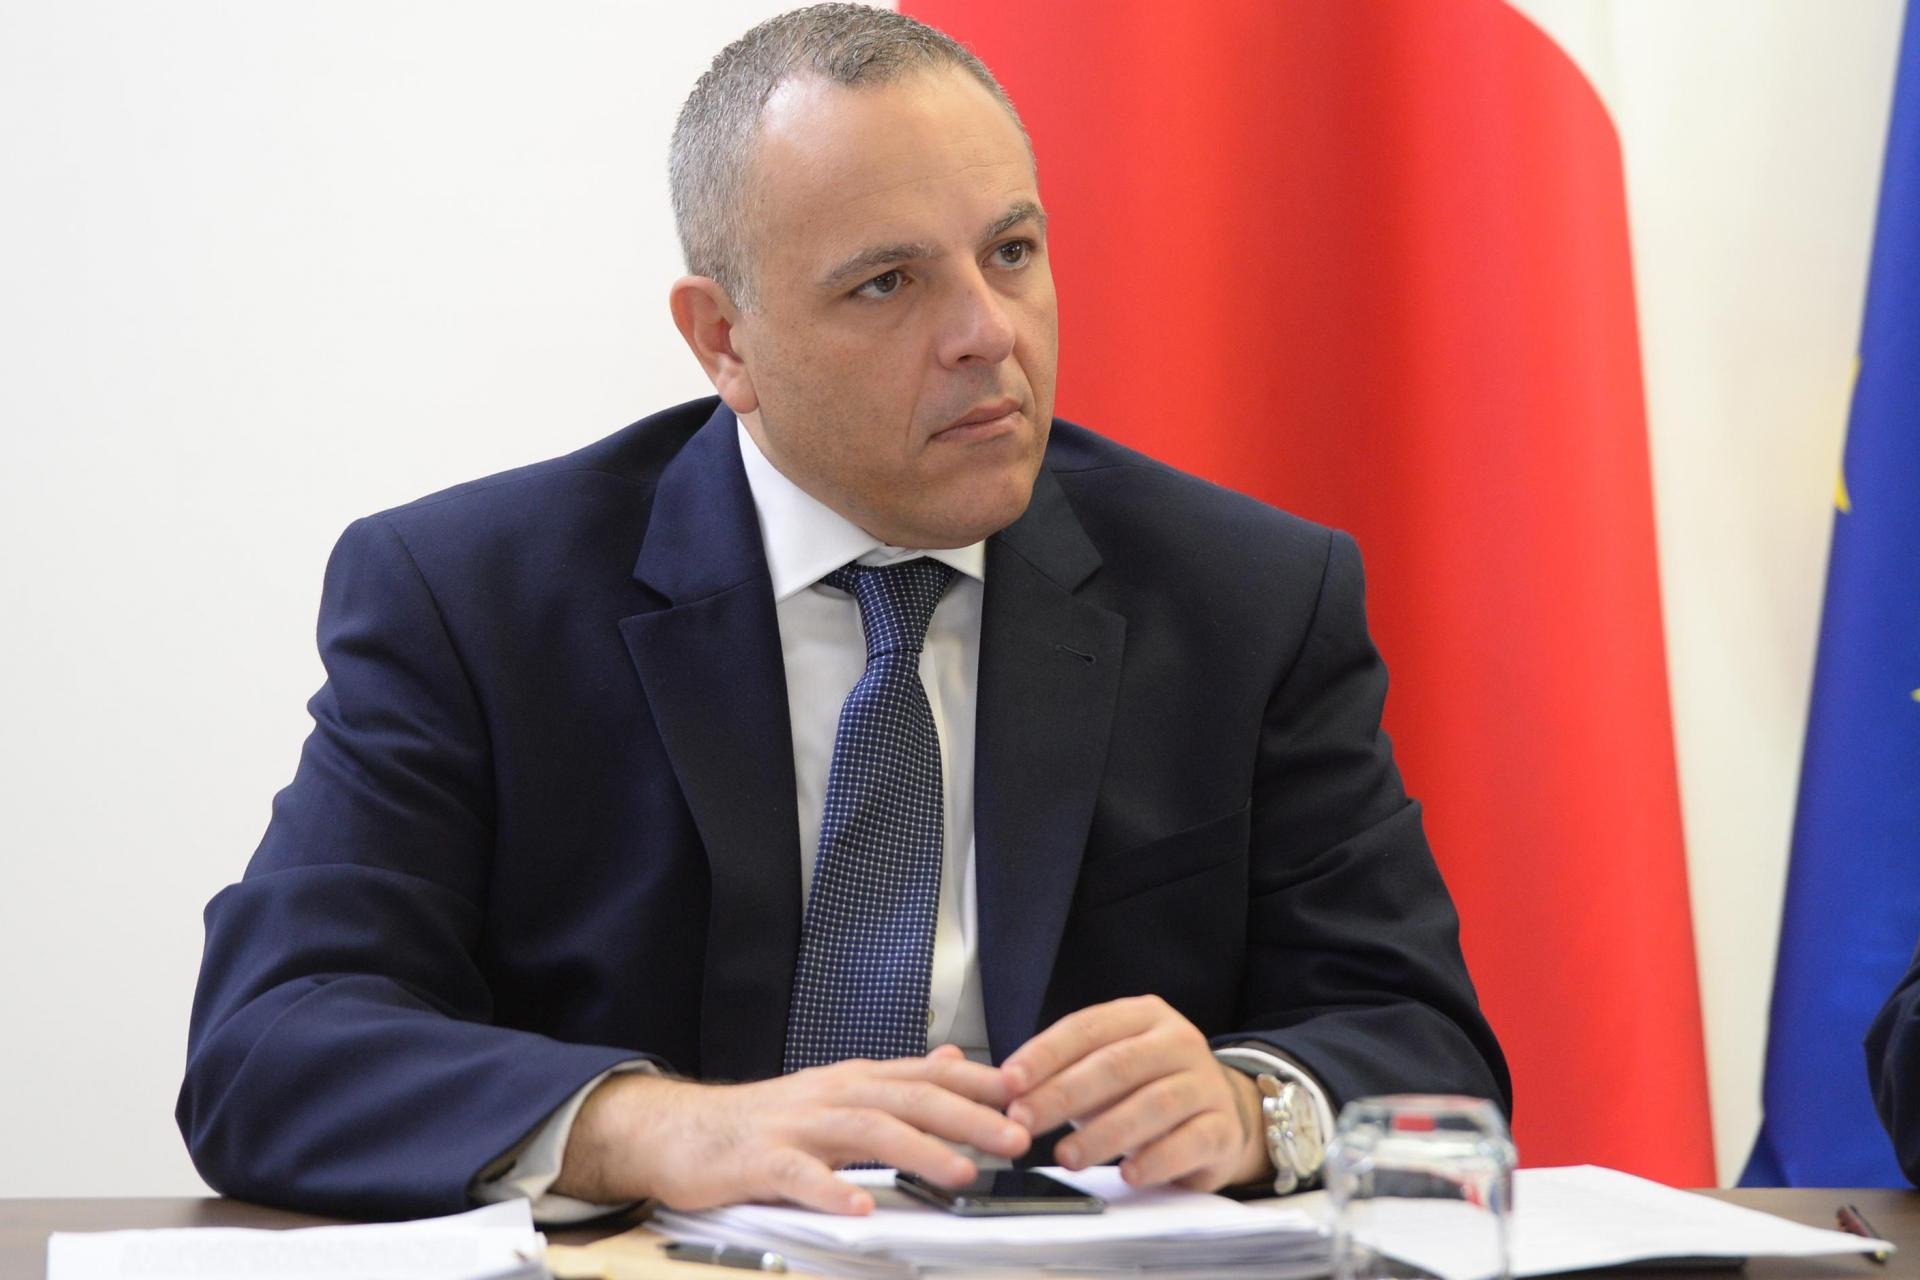 Keith Schembri drops libel suits against Daphne Caruana Galizia